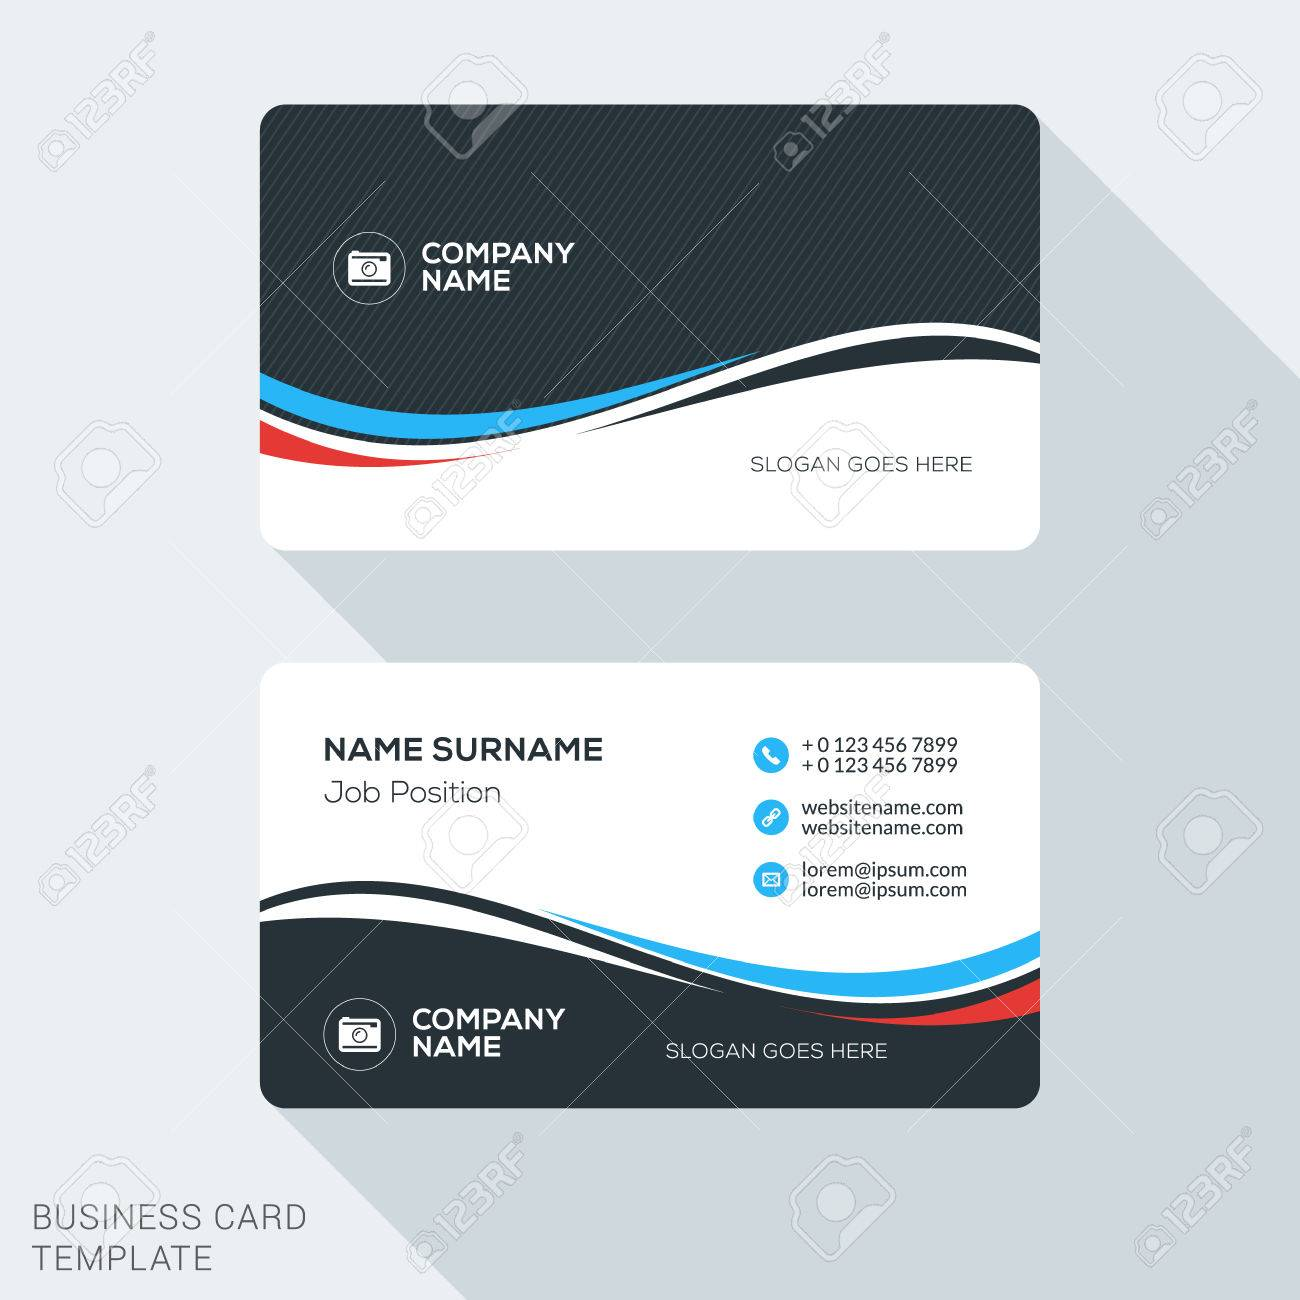 Business card template html image collections card design and card fine business card html template ideas business card ideas business card templates html image collections card fbccfo